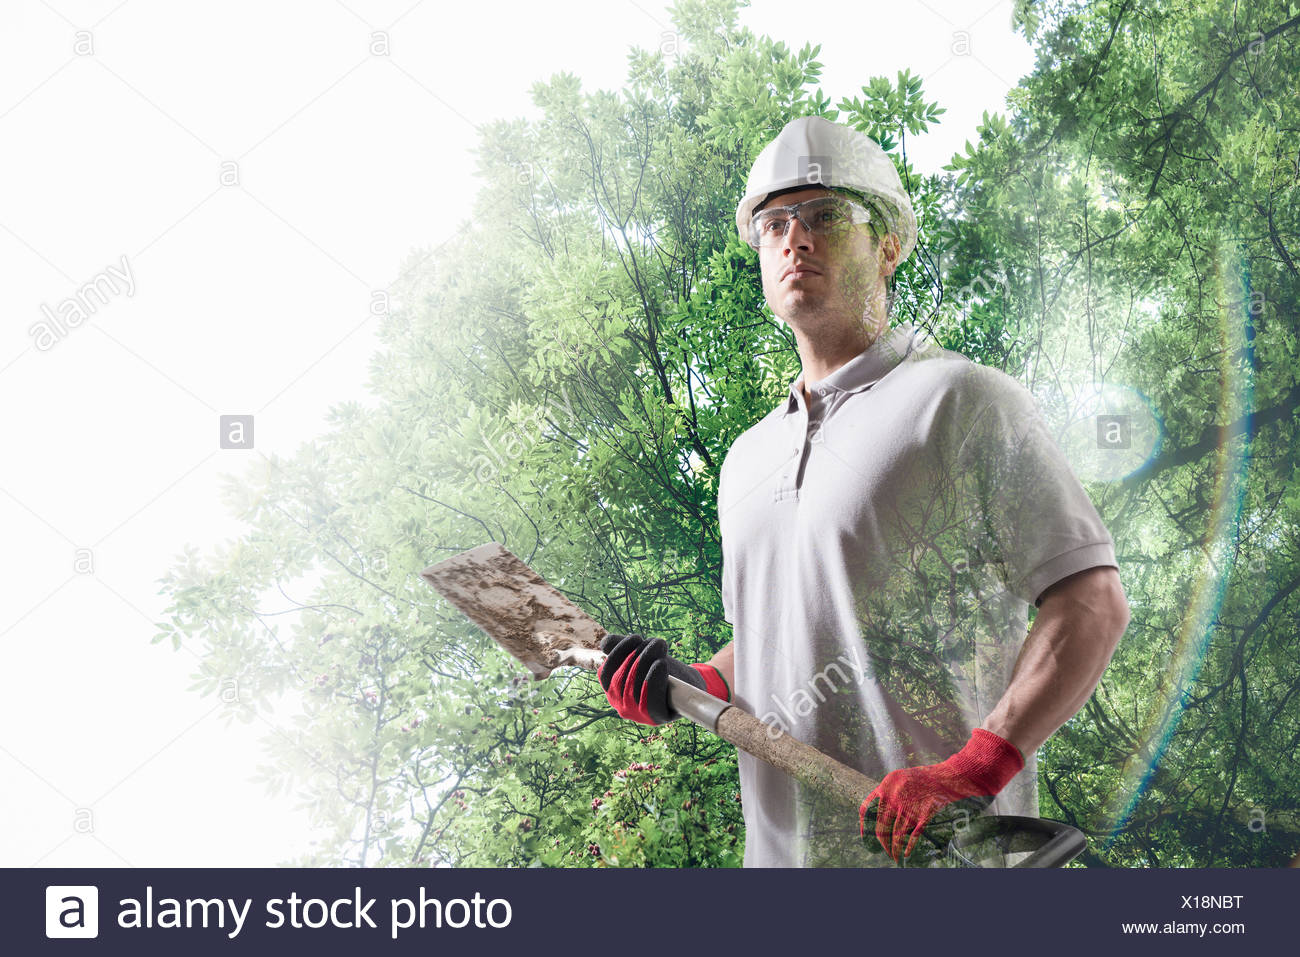 Conceptual image of workman holding spade - Stock Image